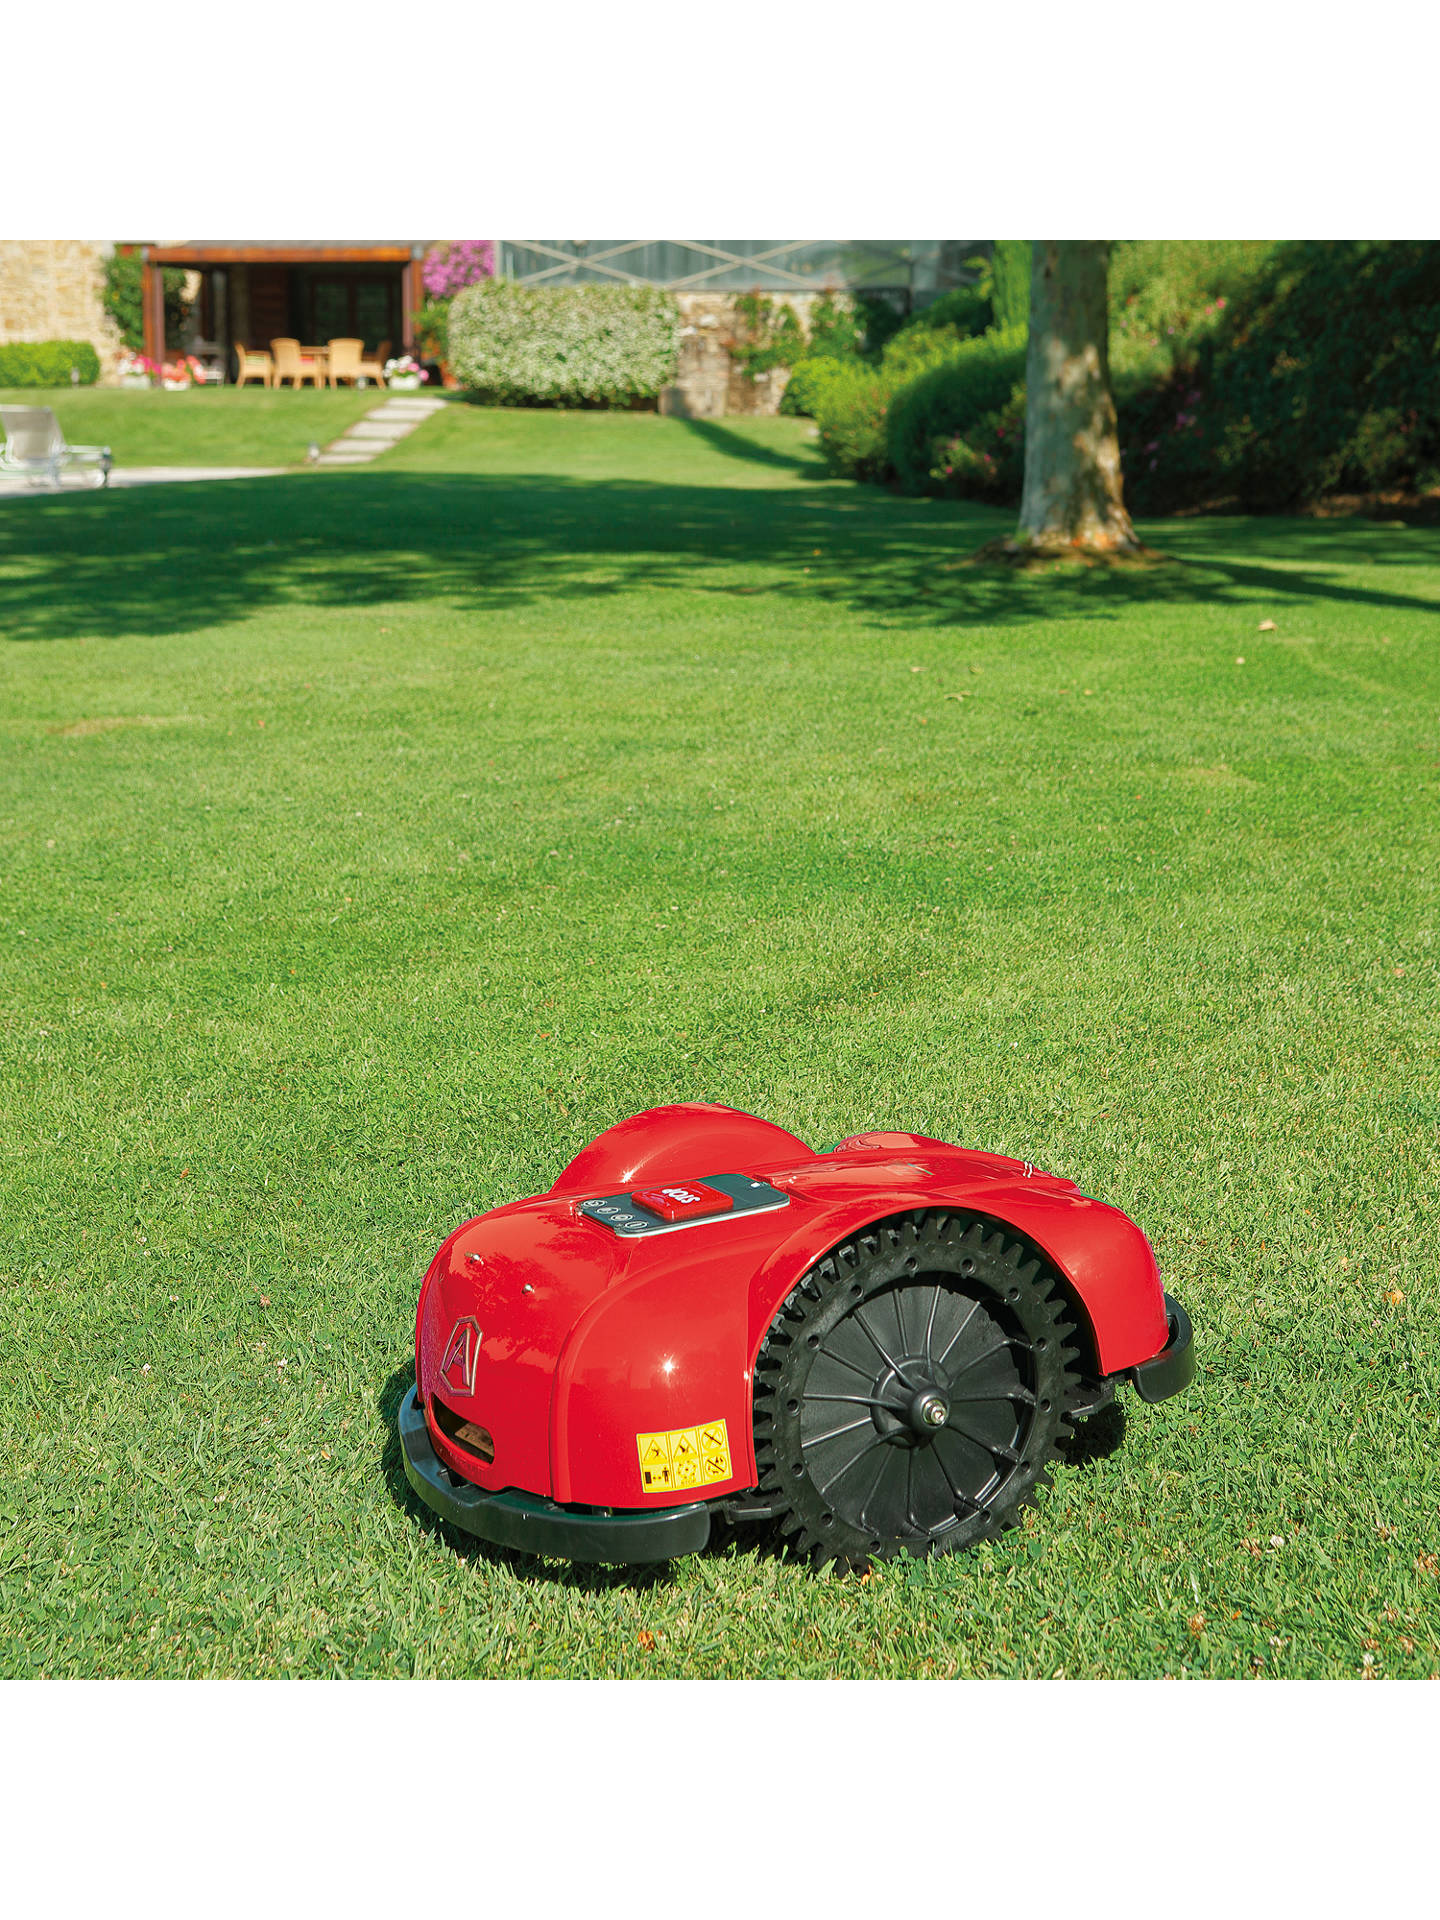 BuyAmbrogio L85 Elite Robotic Lawnmower  & Ambrogio ZIN85 installation Online at johnlewis.com